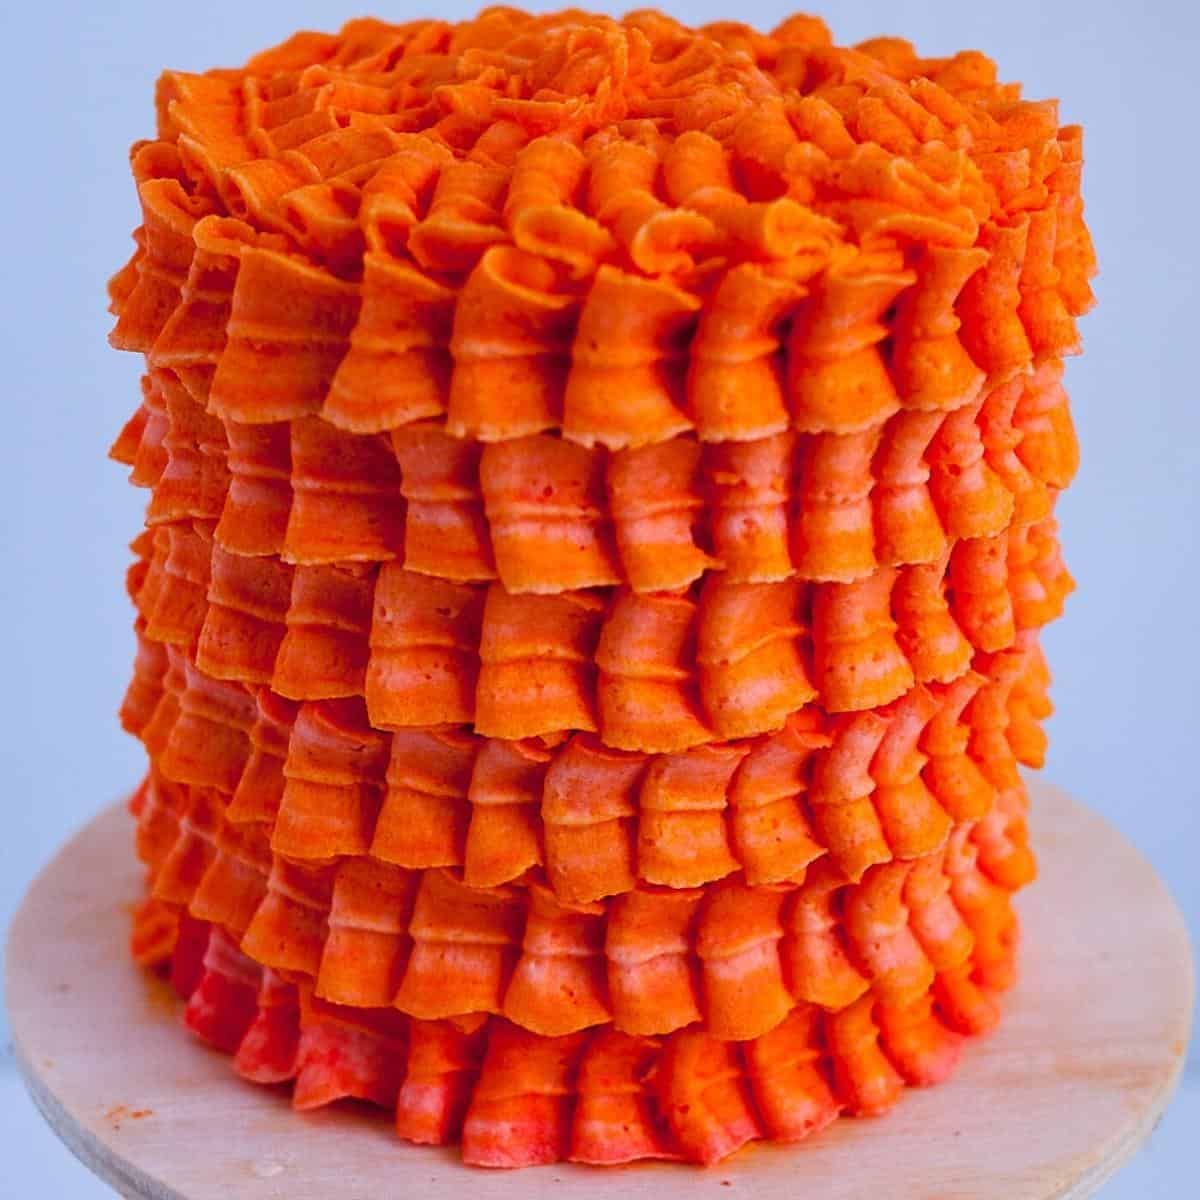 A frosted cake with orange Swiss meringue buttercream.